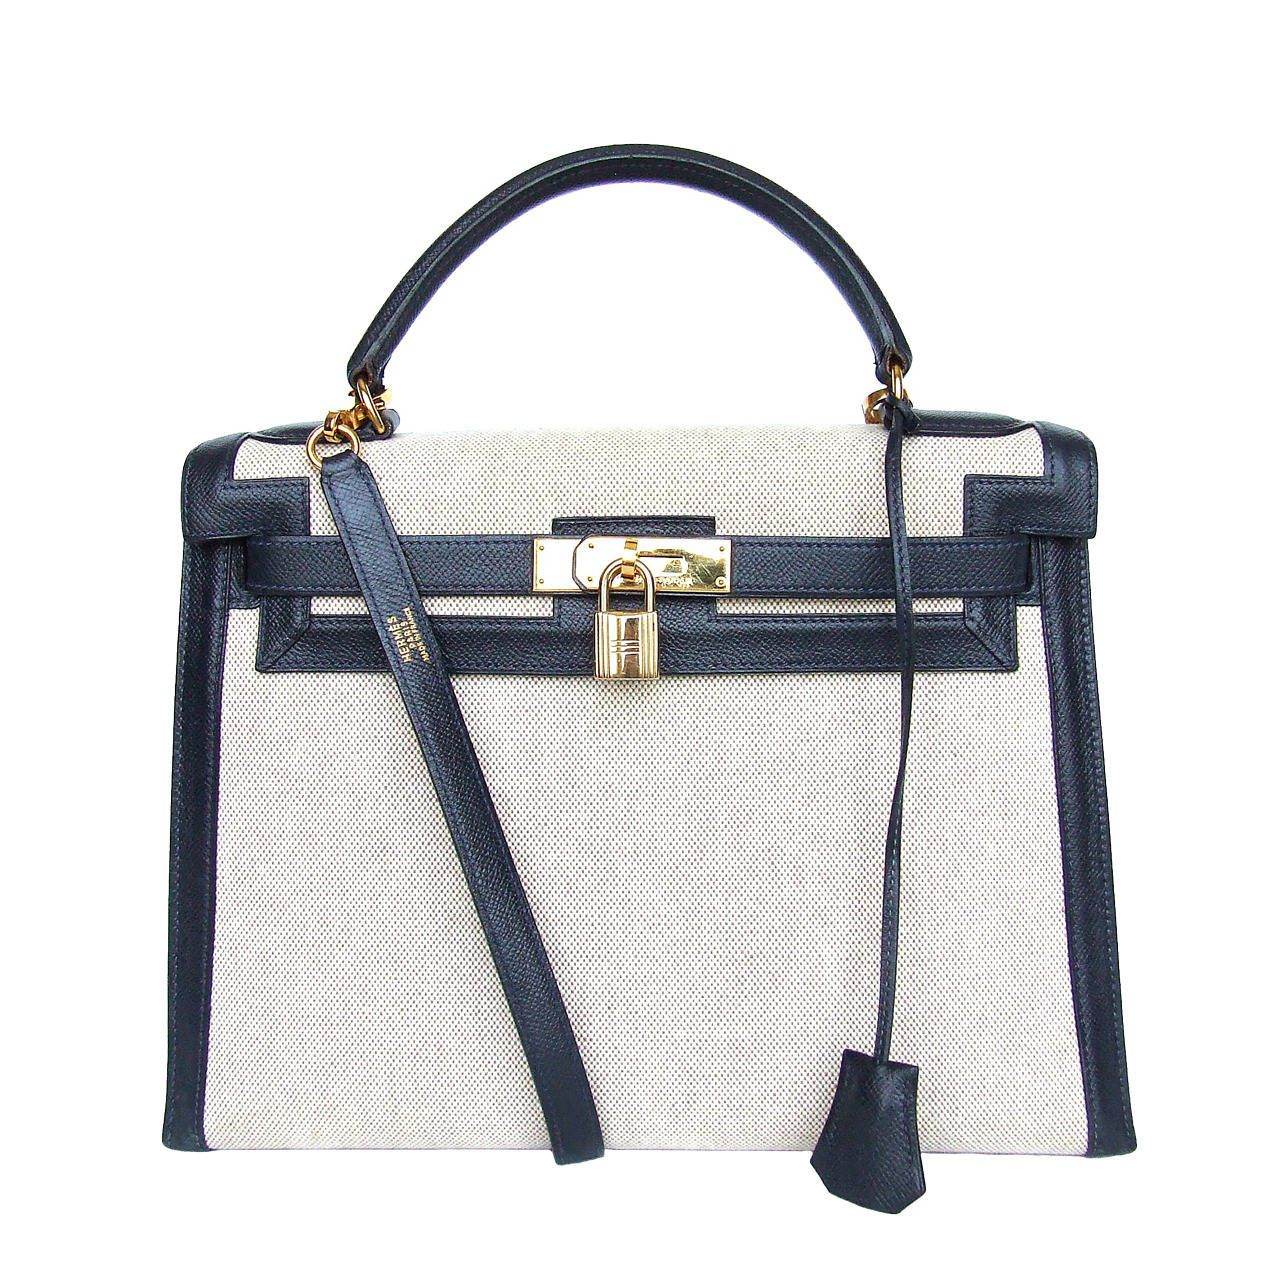 6f89b635282 Authentic Hermes Kelly 32 Bag Sellier Bi Matiere Canvas Leather Gold ...